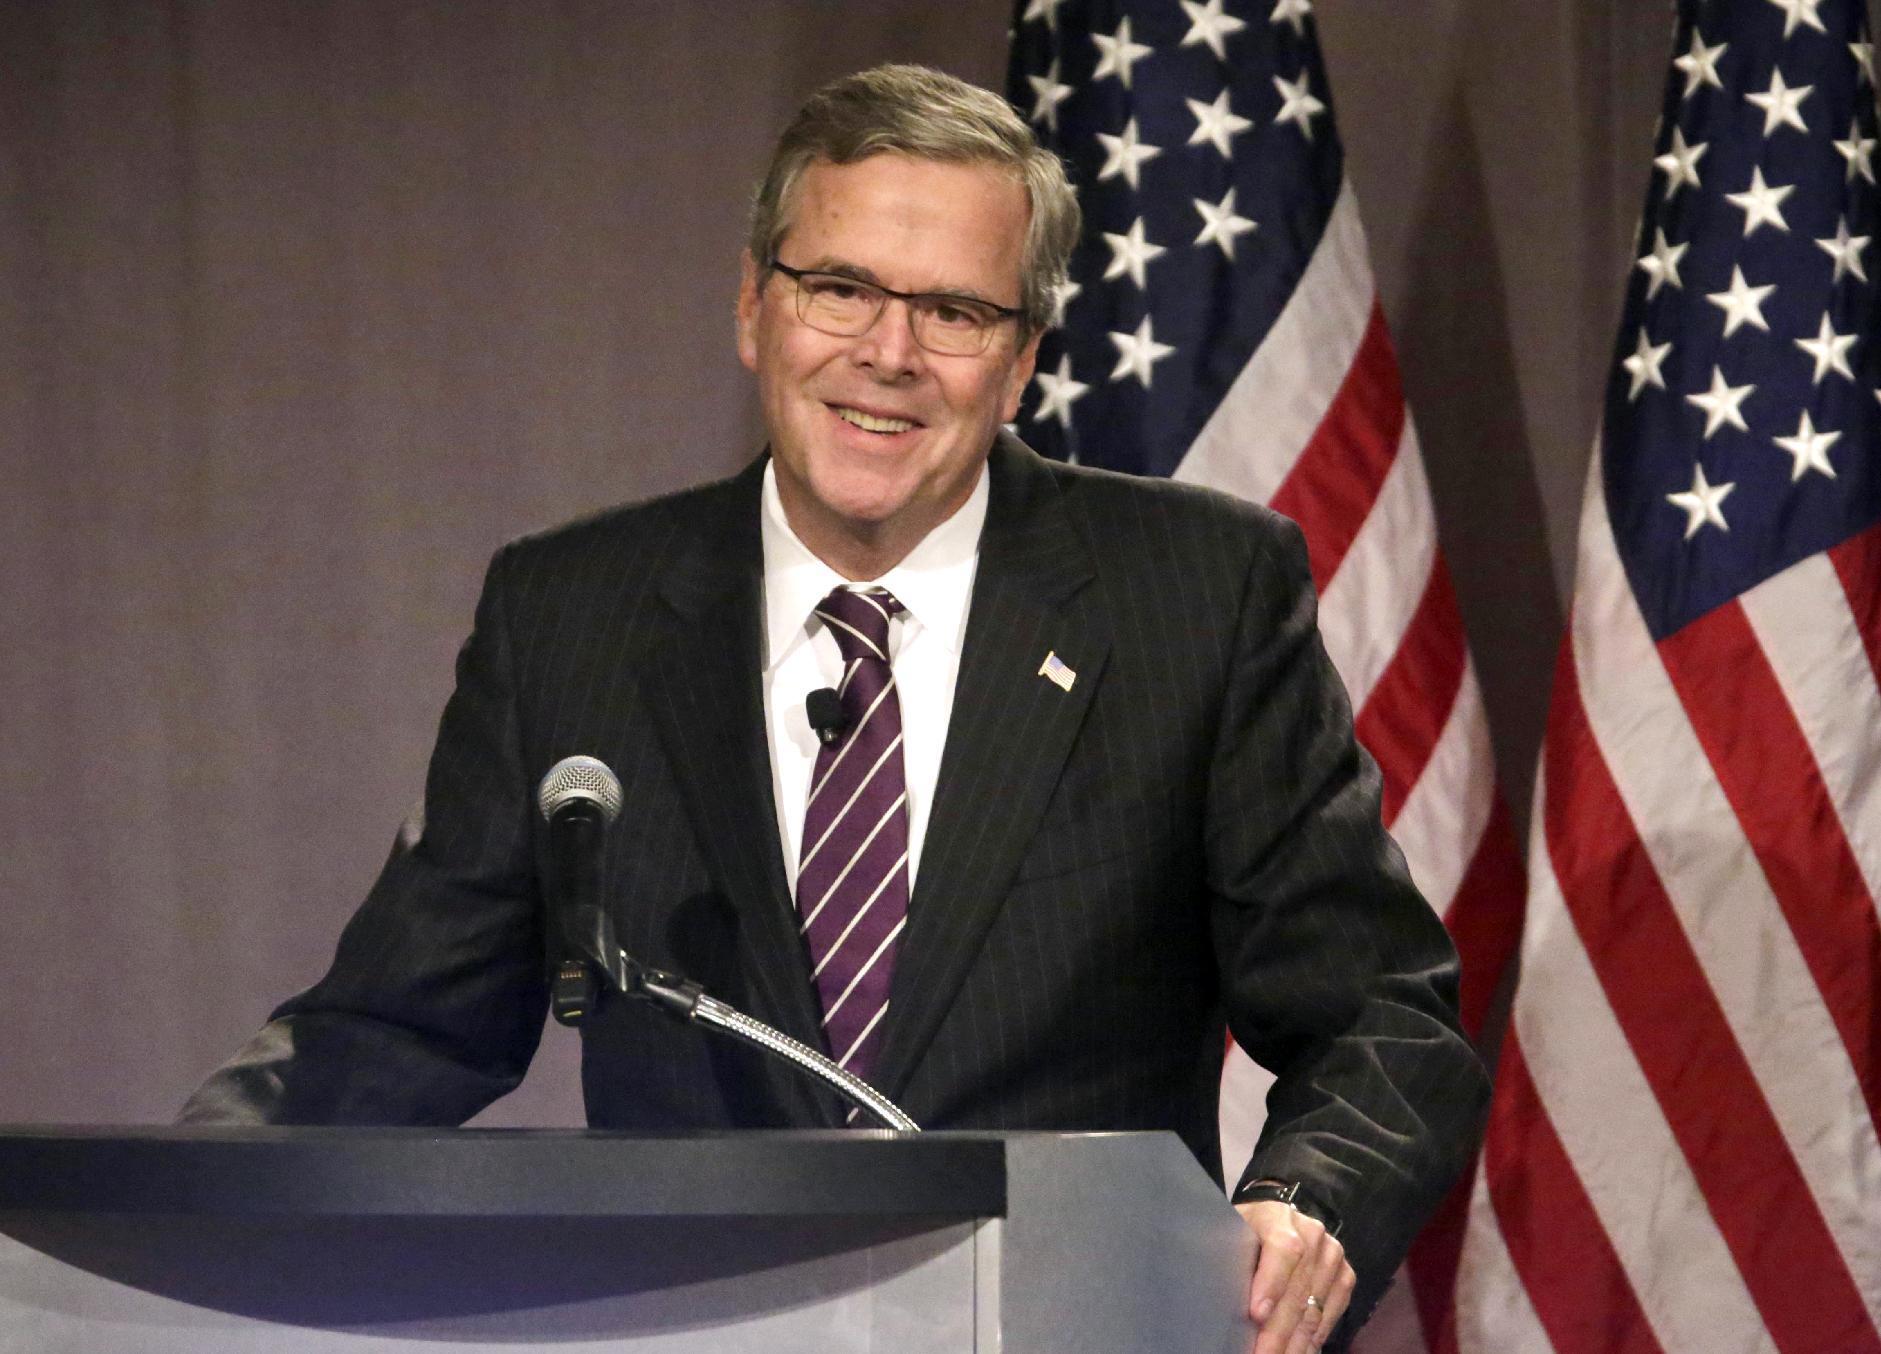 GOP's Jeb Bush working to reassert conservative credentials